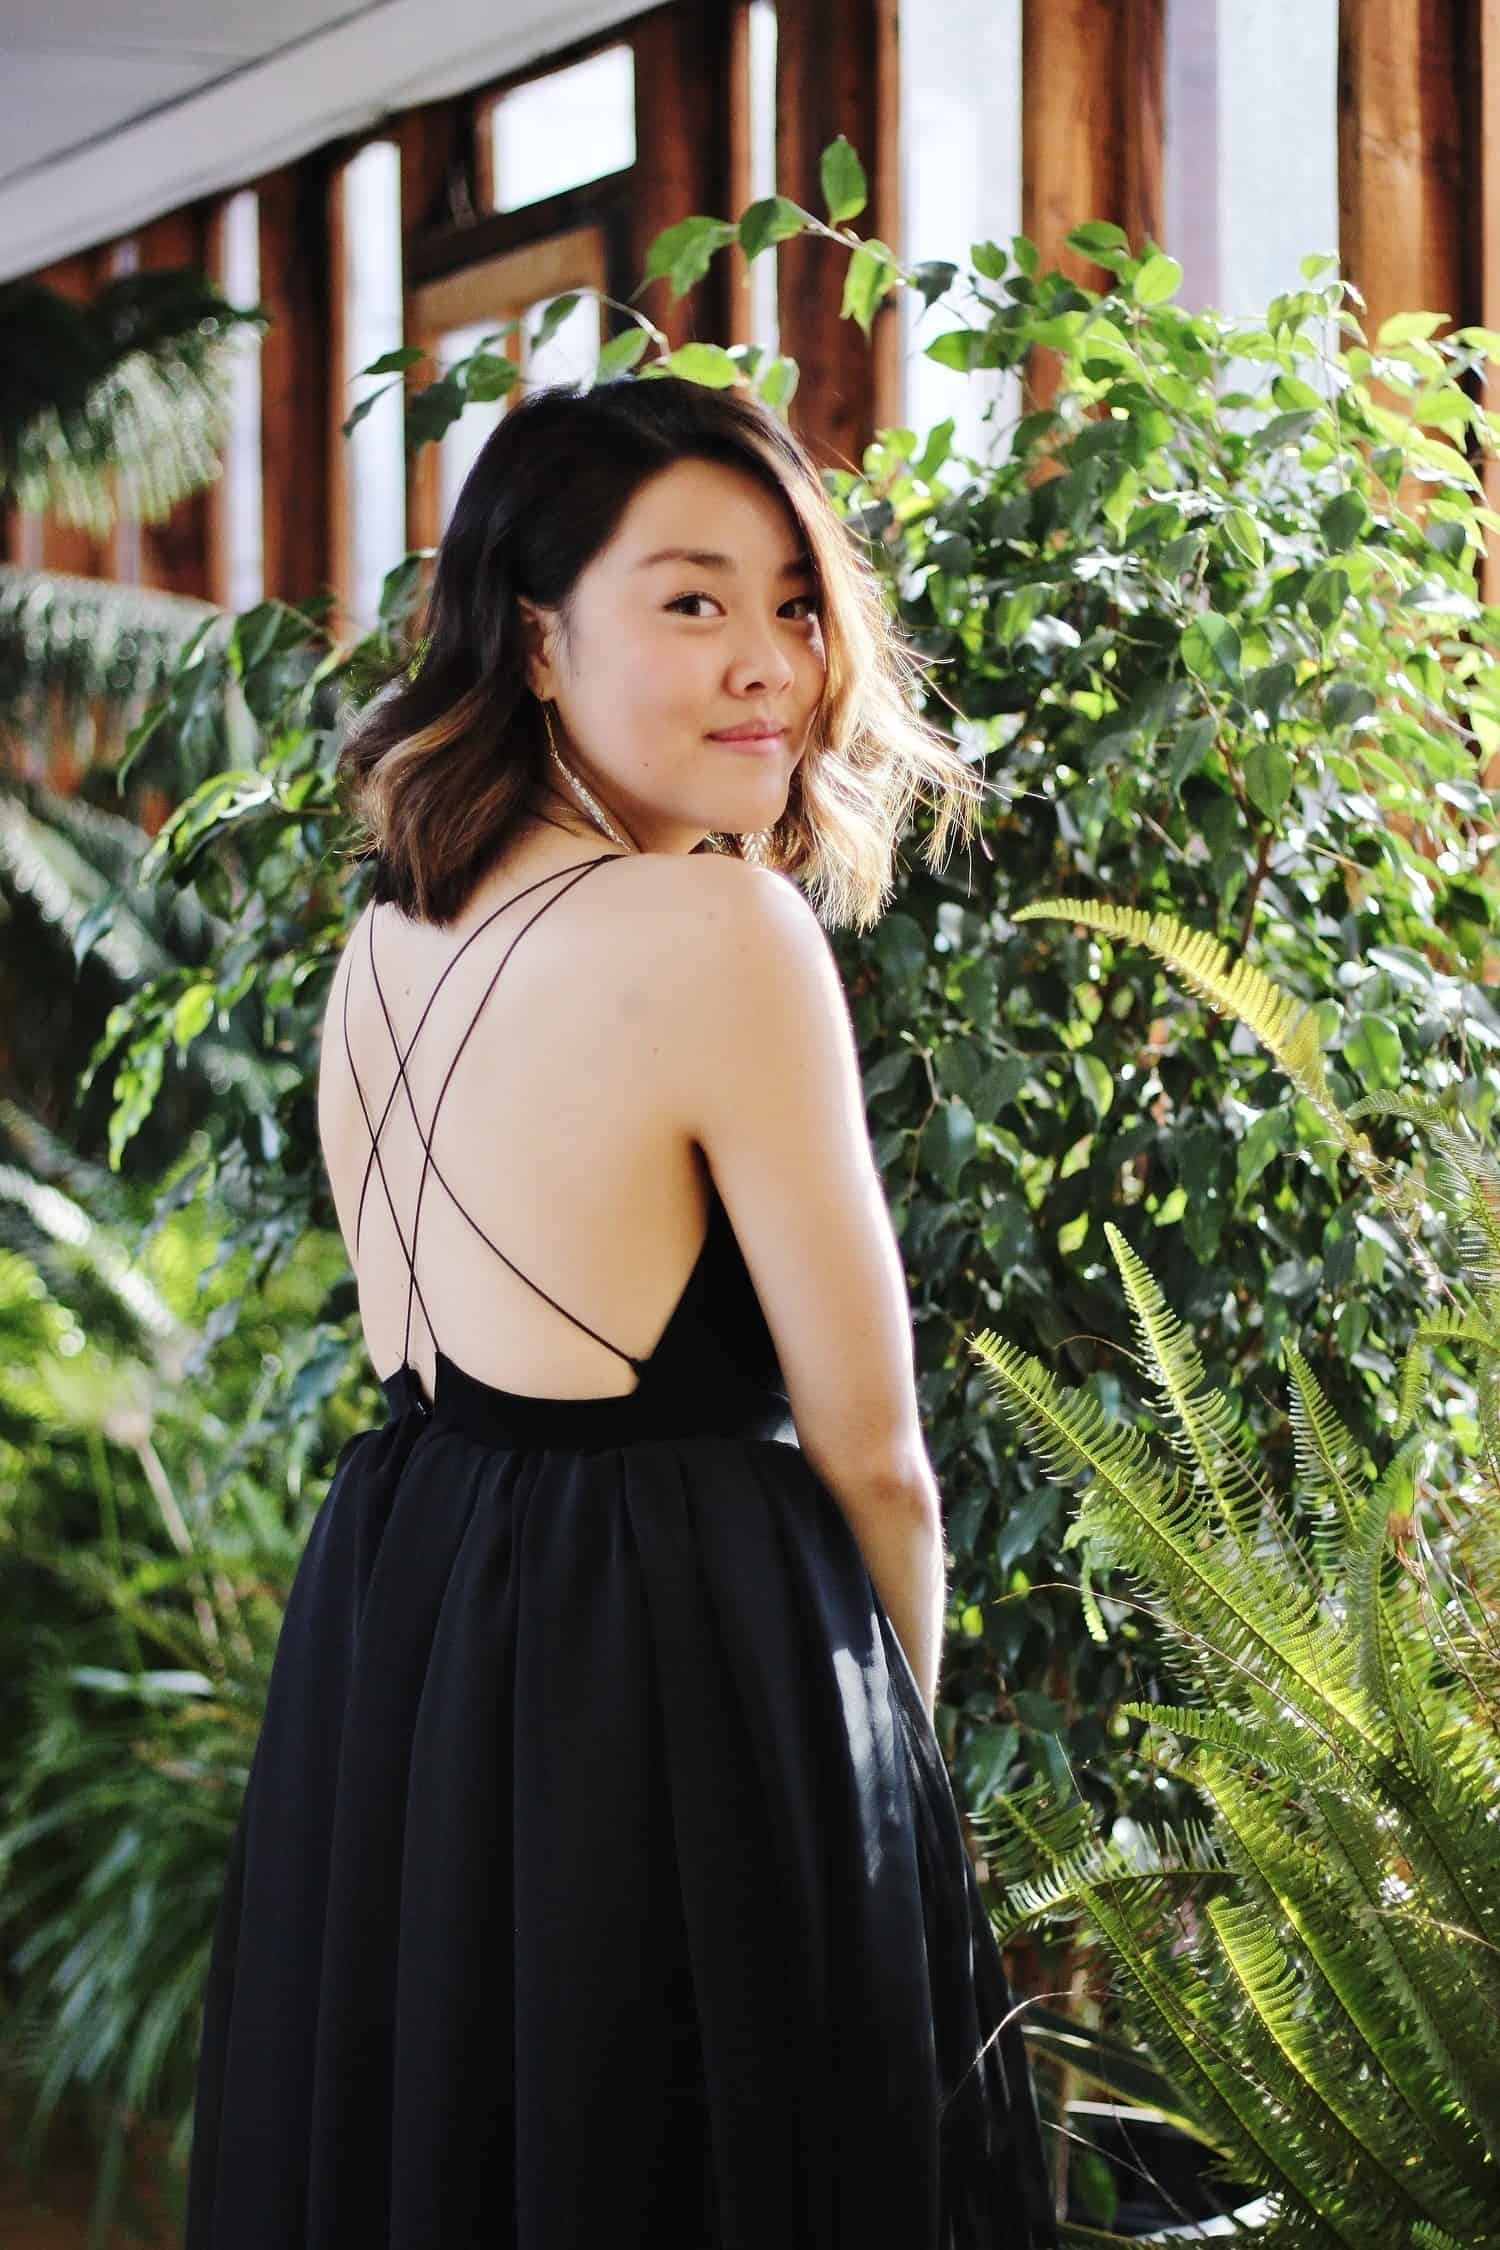 DIY chiffon dress with delicate cross straps